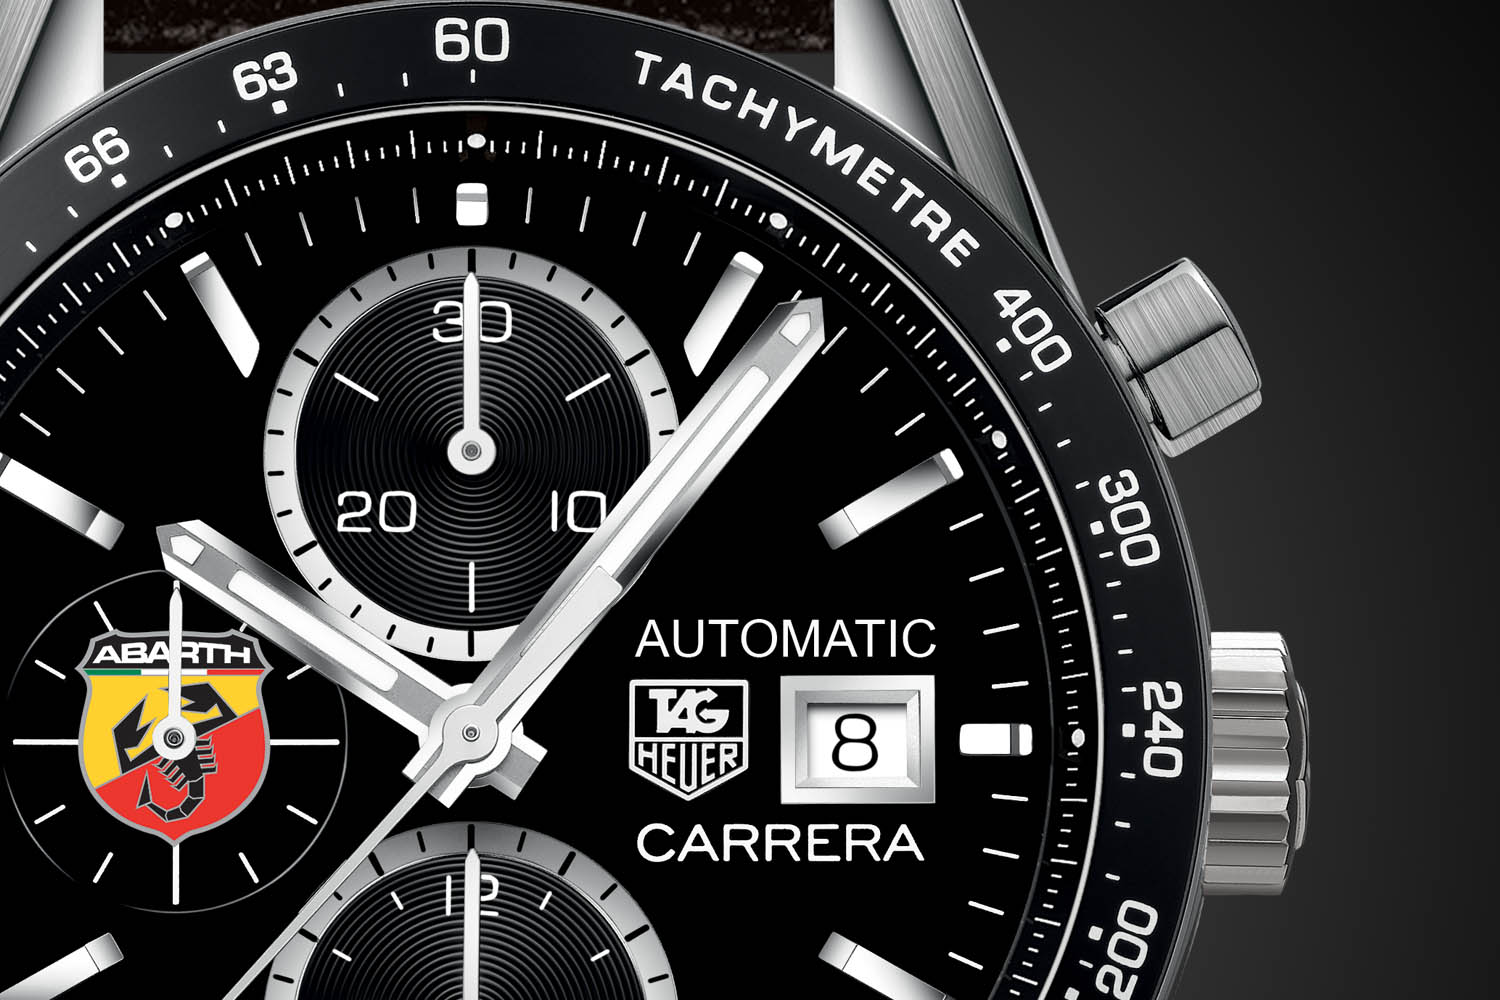 TAG Heuer Carrera Abarth 595 Competizione by TAG Heuer - 4